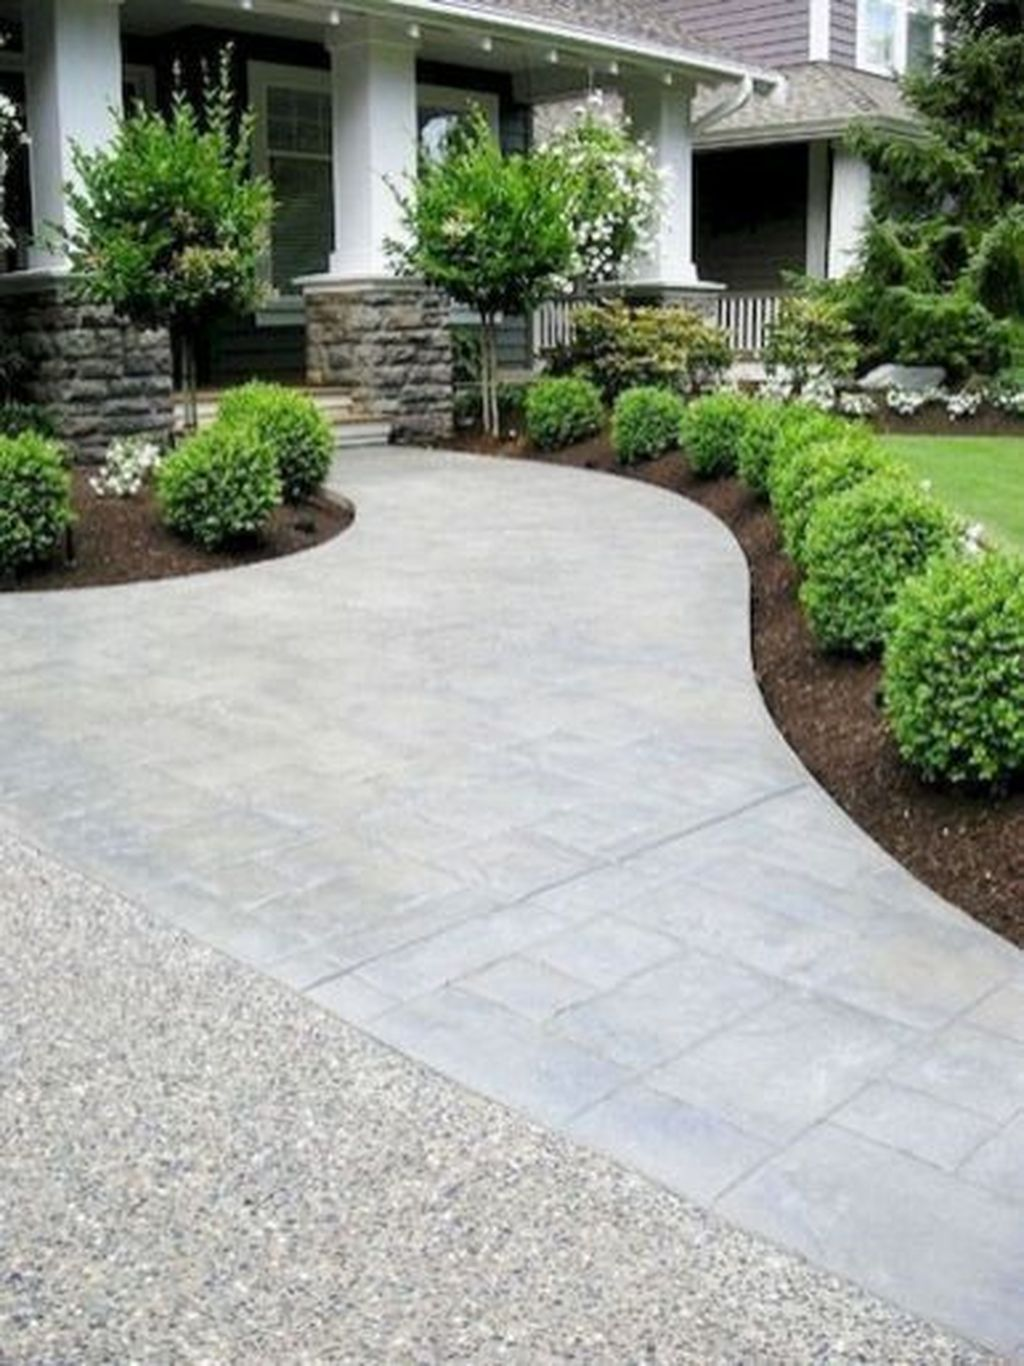 Awesome 99 Beautiful Garden Design Ideas On A Budget. More At Http://